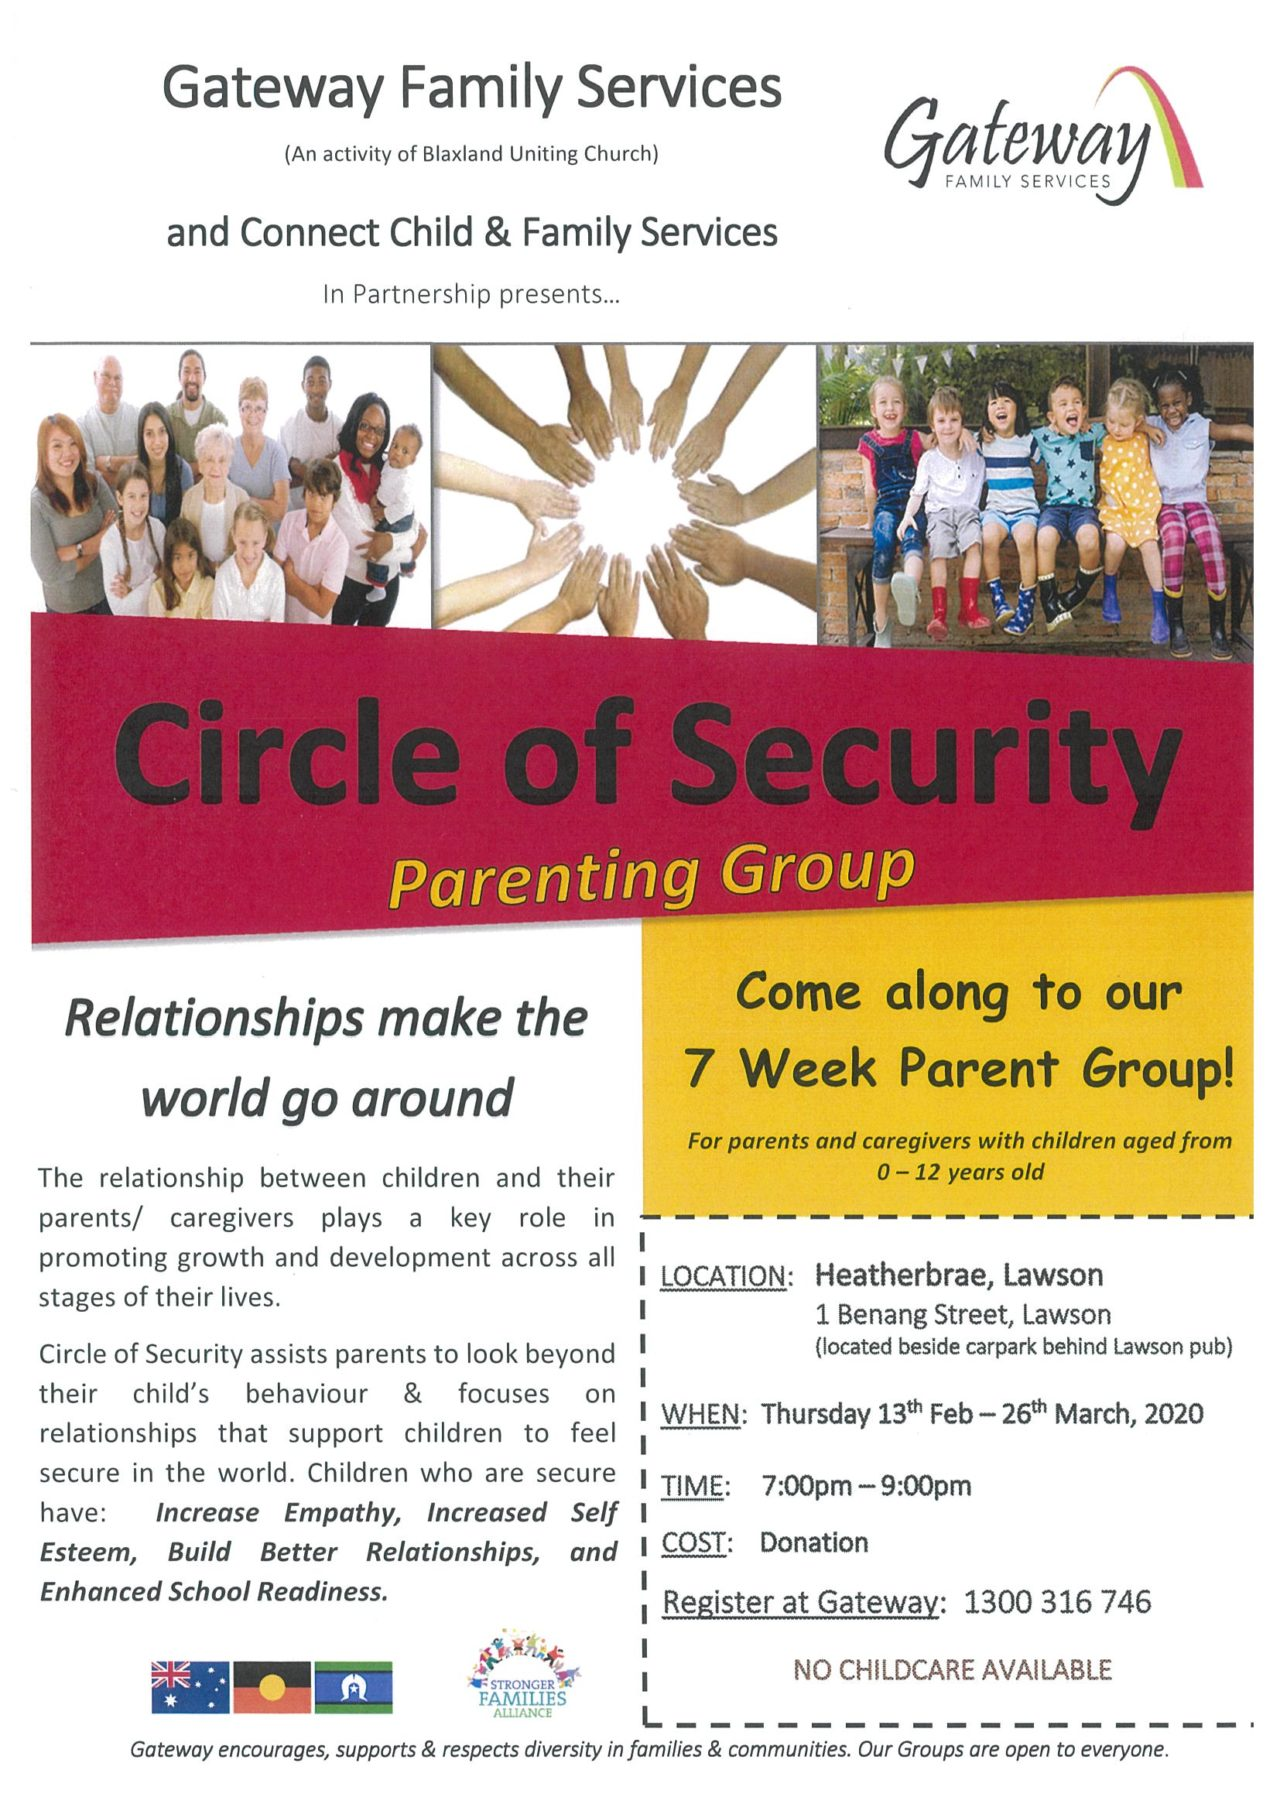 Flyer-T12020-Circle-of-Security-Lawson-1280x1811.jpg